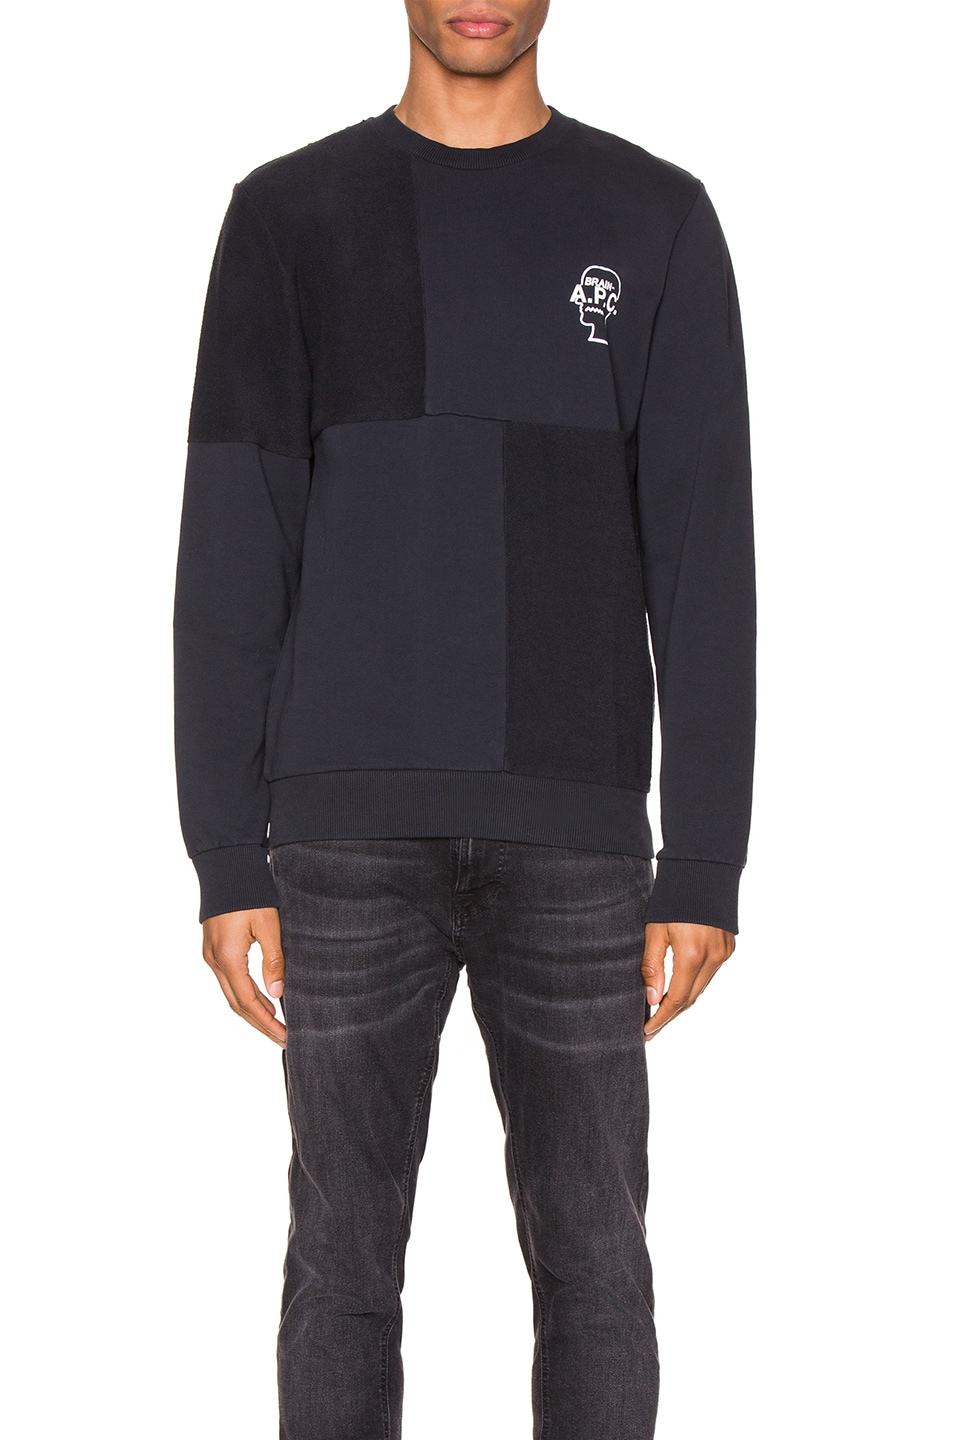 Image 1 of A.P.C. x Brain Dead Pony Sweatshirt in Dark Navy